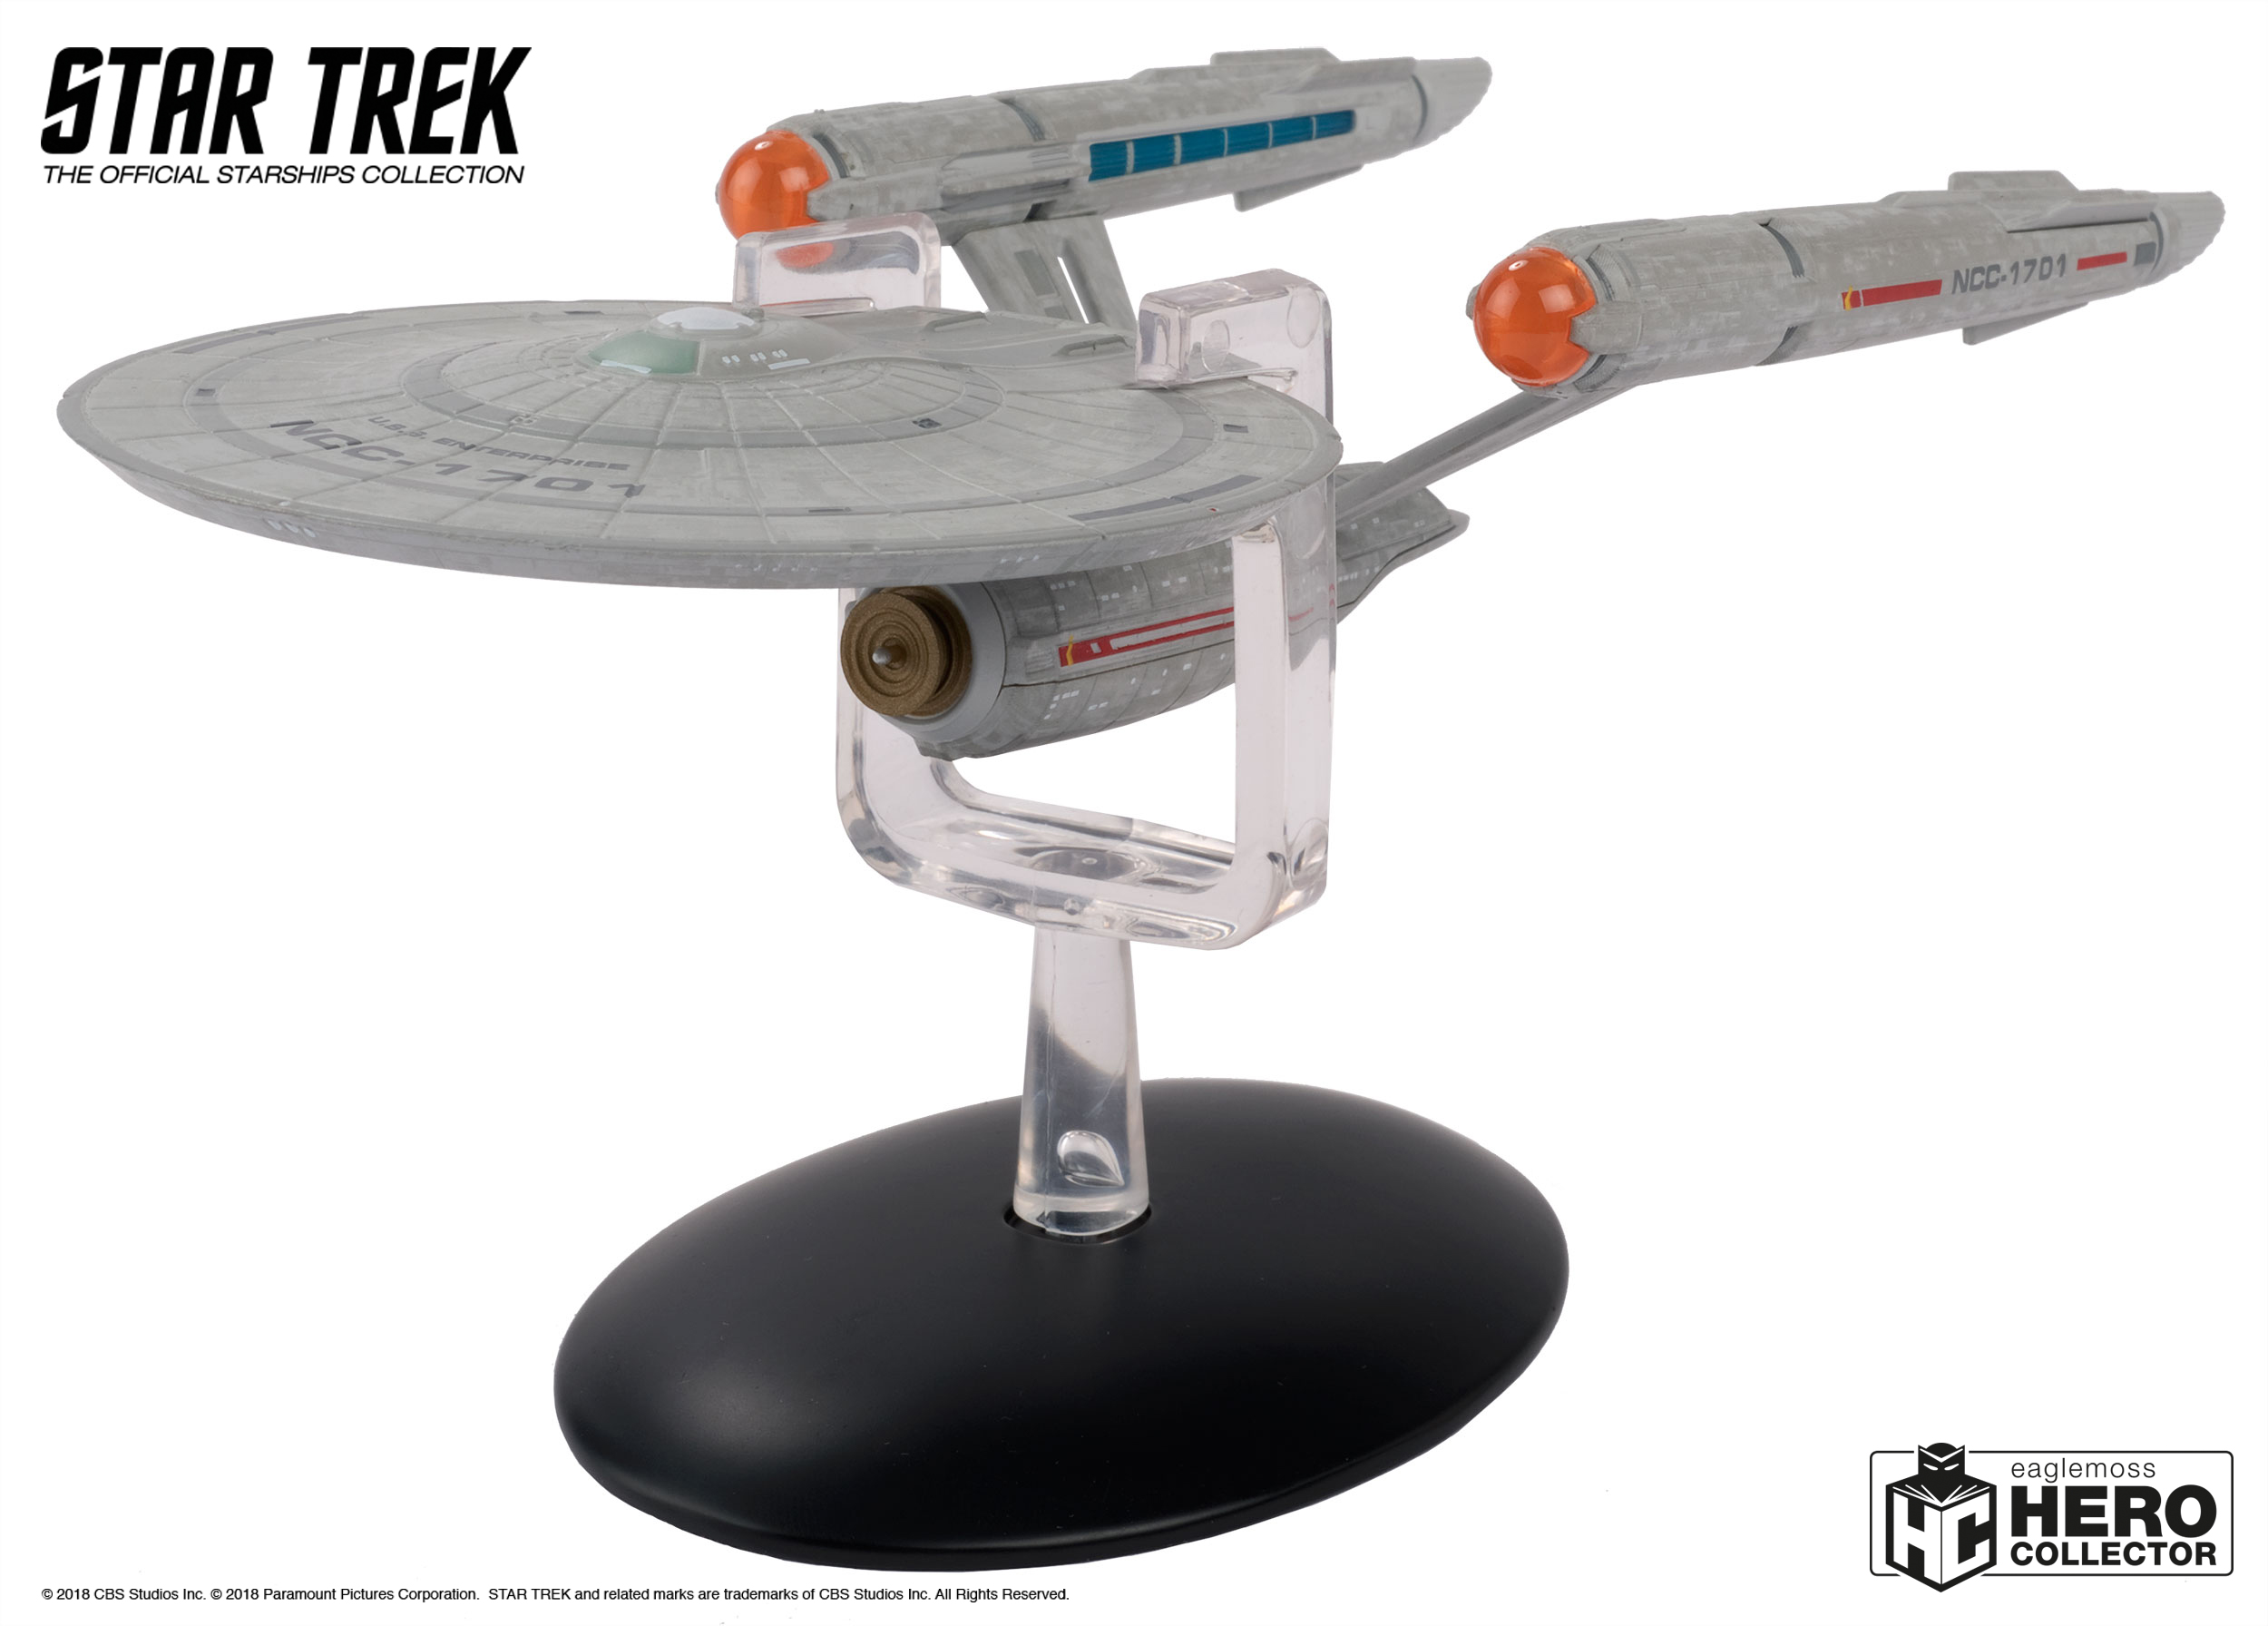 Star Trek Starships Xl Line Extension Hero Collector Click Image To See Larger View Heres A Good Look At The Model Itself On Images For